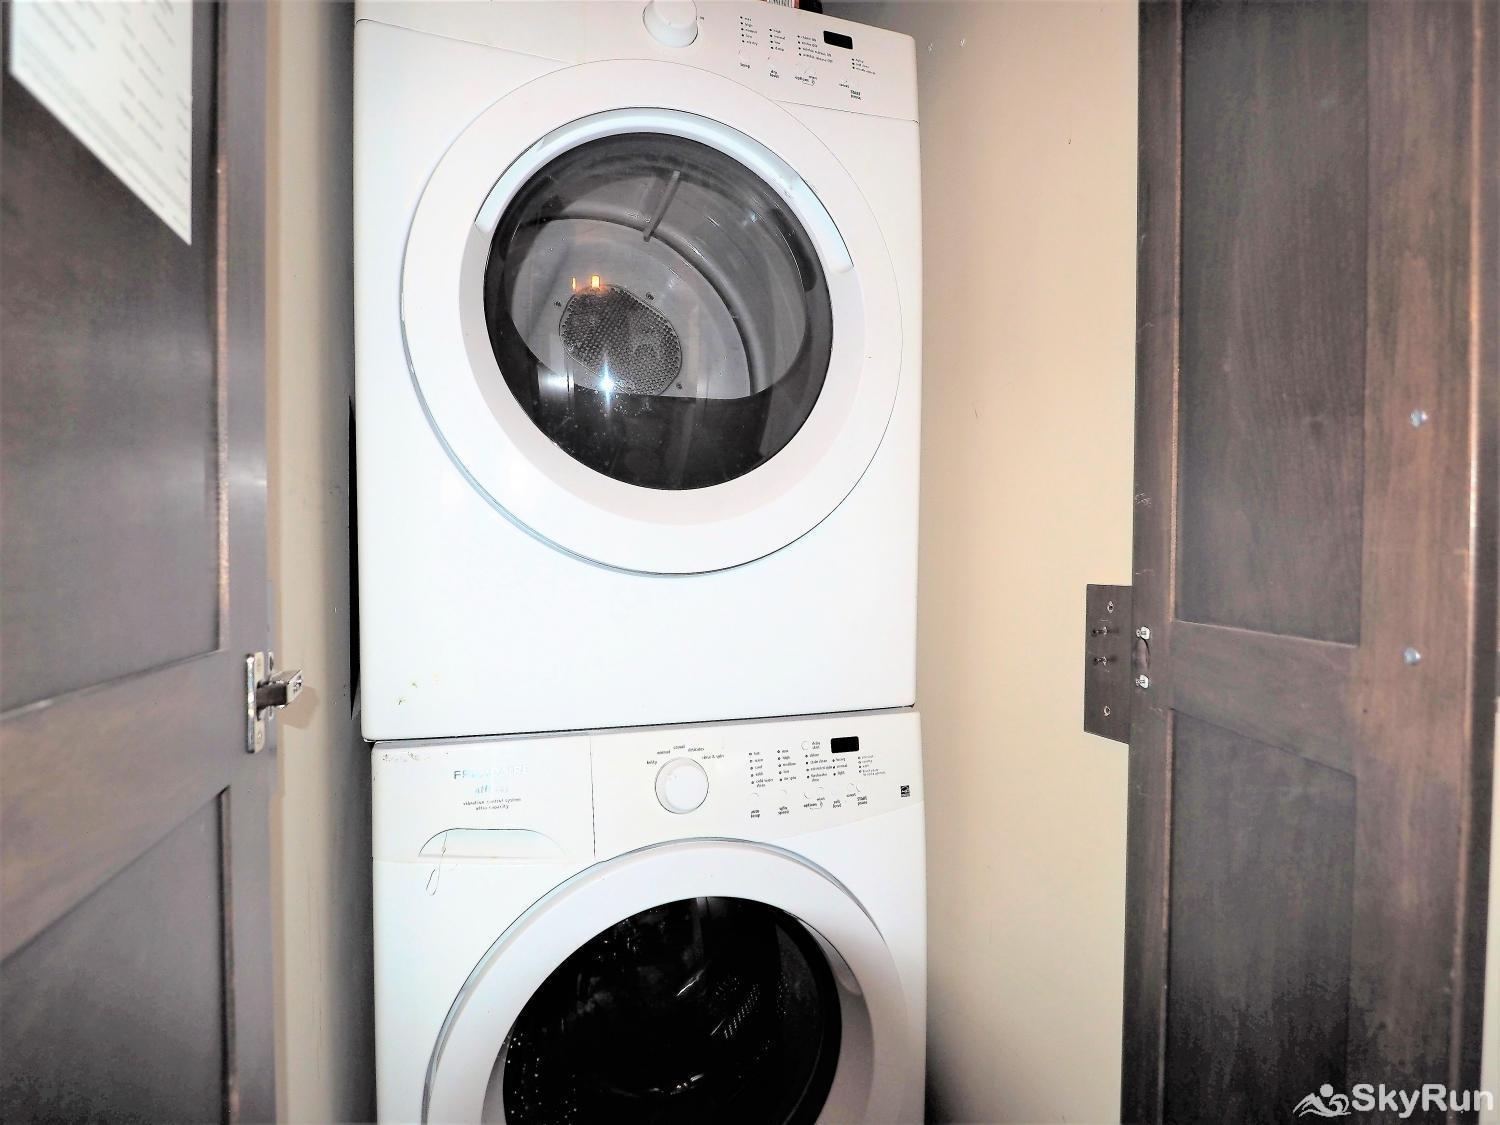 Old Summerland 4 bedroom townhouse The washer/dryer combo is attached to the powder room